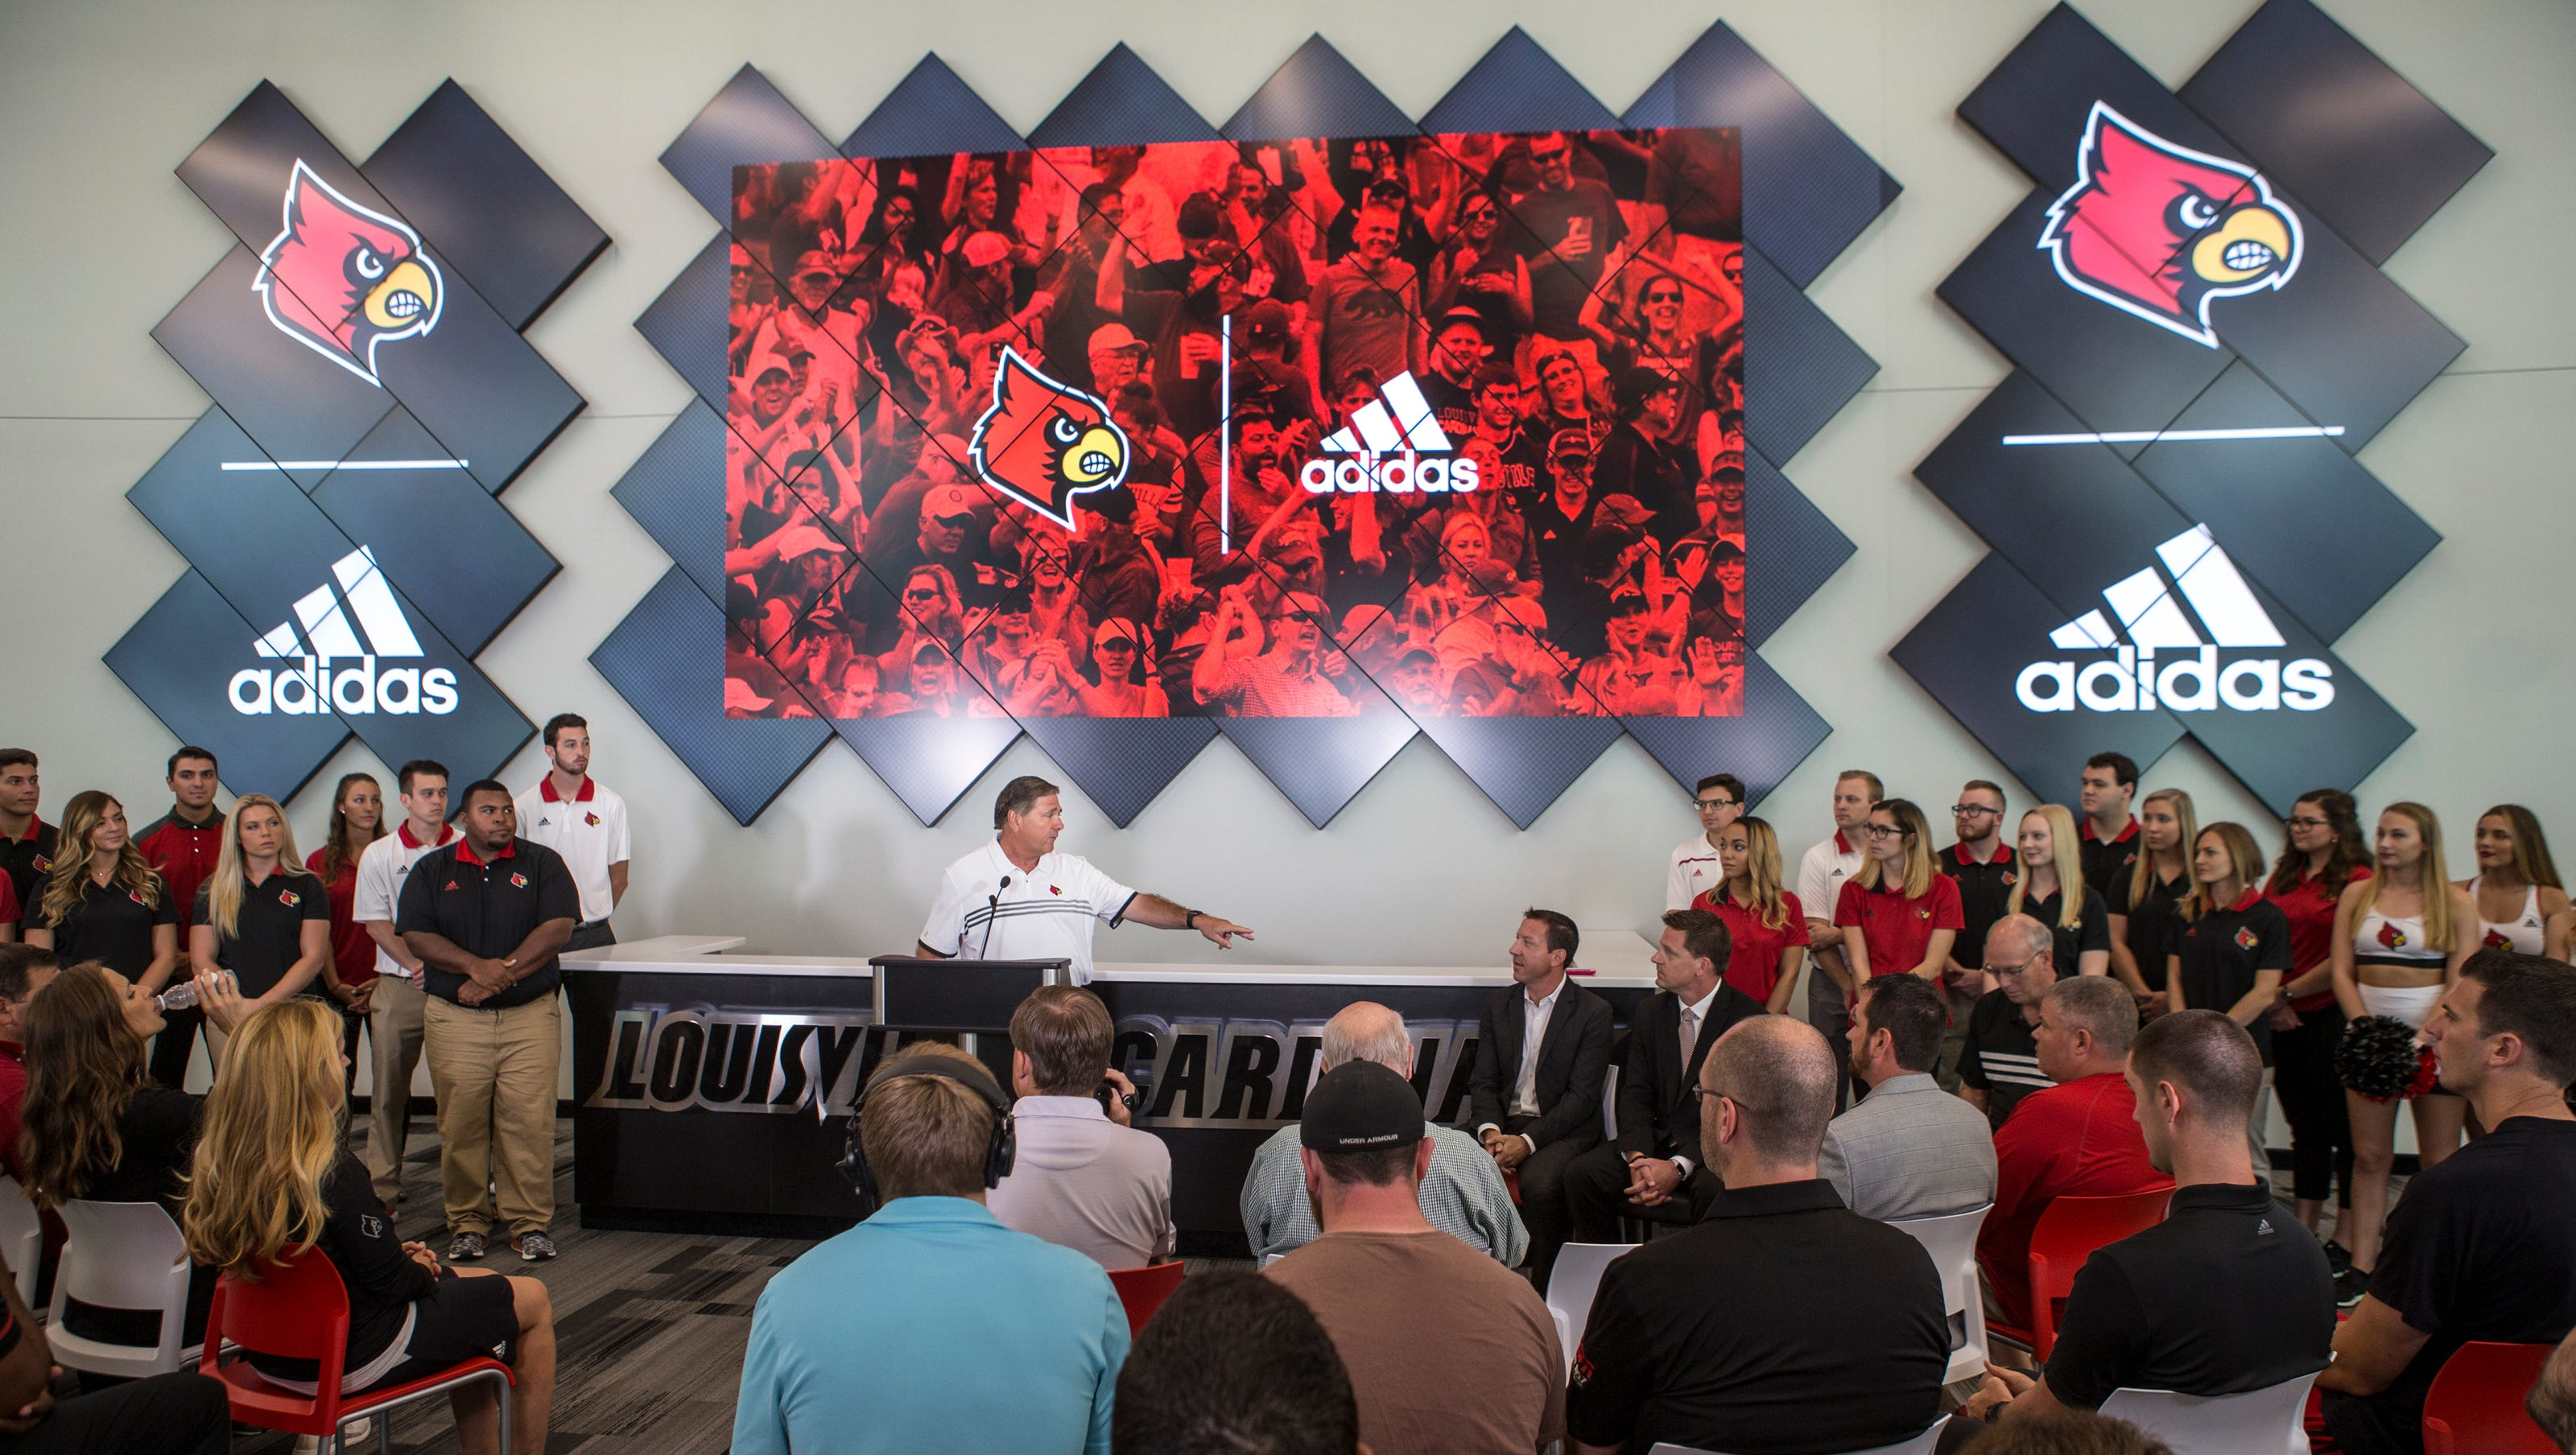 Louisville and Adidas: Will the basketball scandal kill the deal?